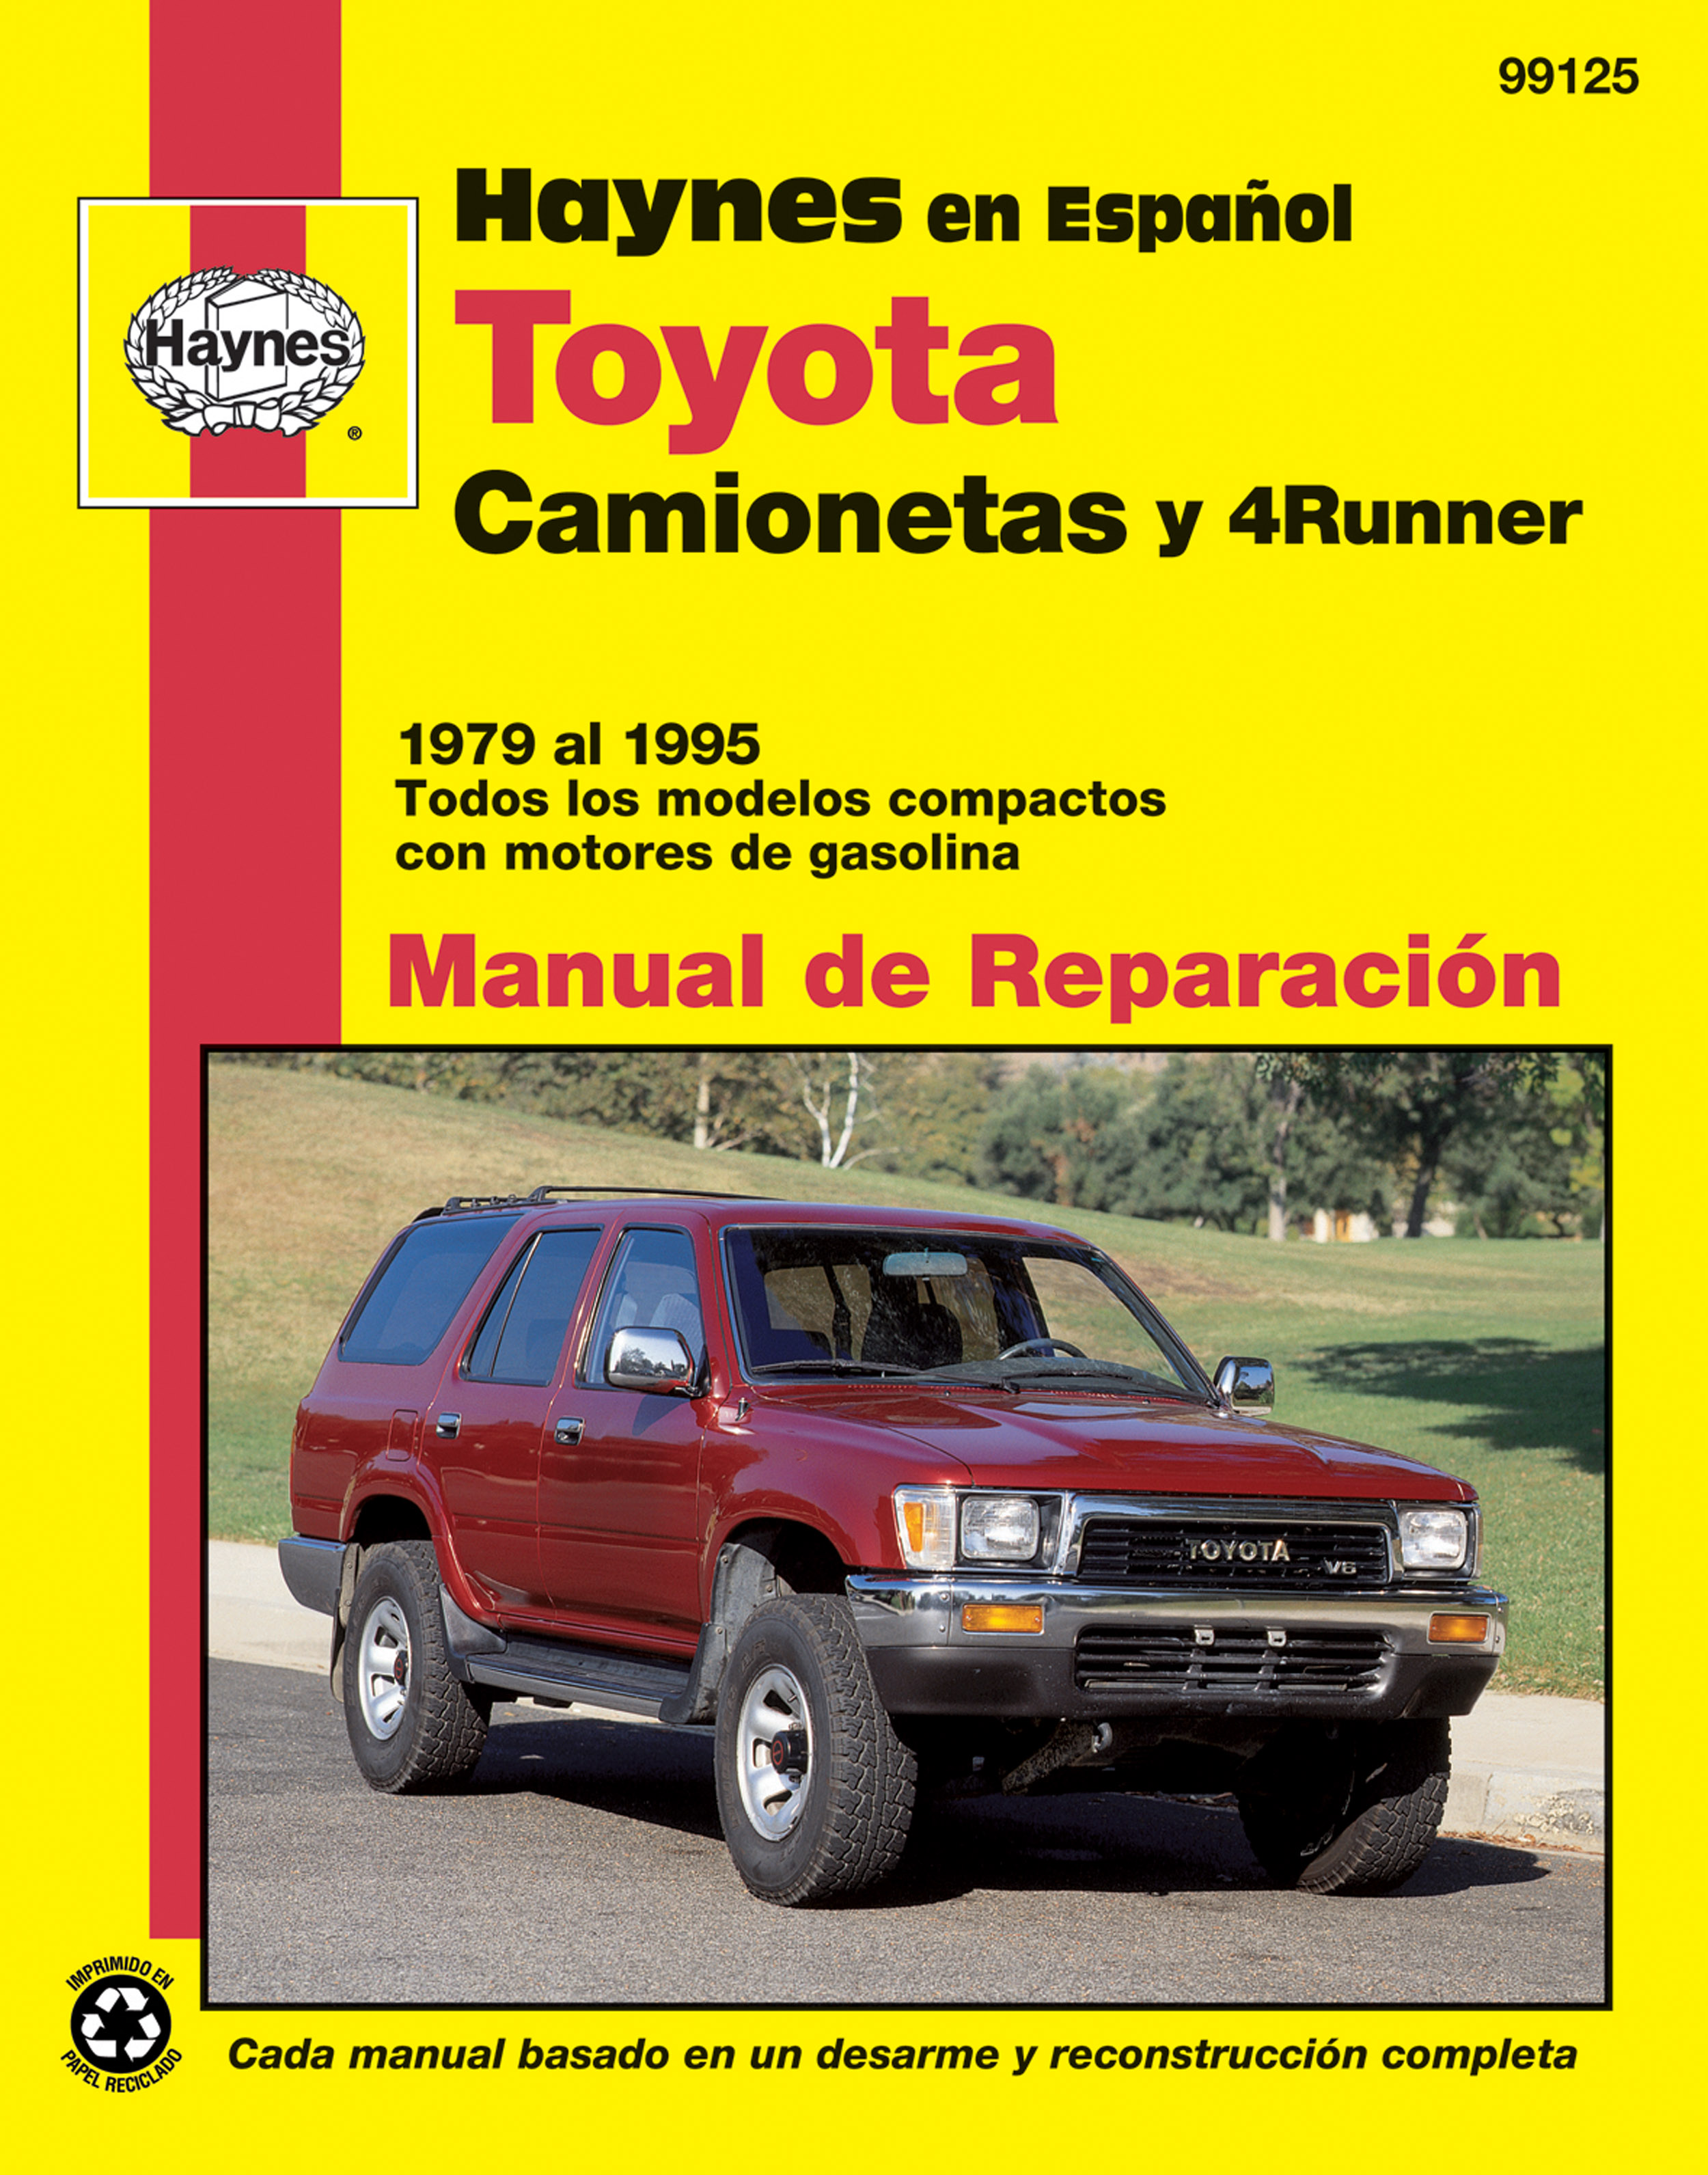 toyota camionetas y 4 runner haynes manual de reparaci n 79 95 rh haynes com 1995 toyota 4runner repair manual free download 1995 toyota 4runner repair manual free